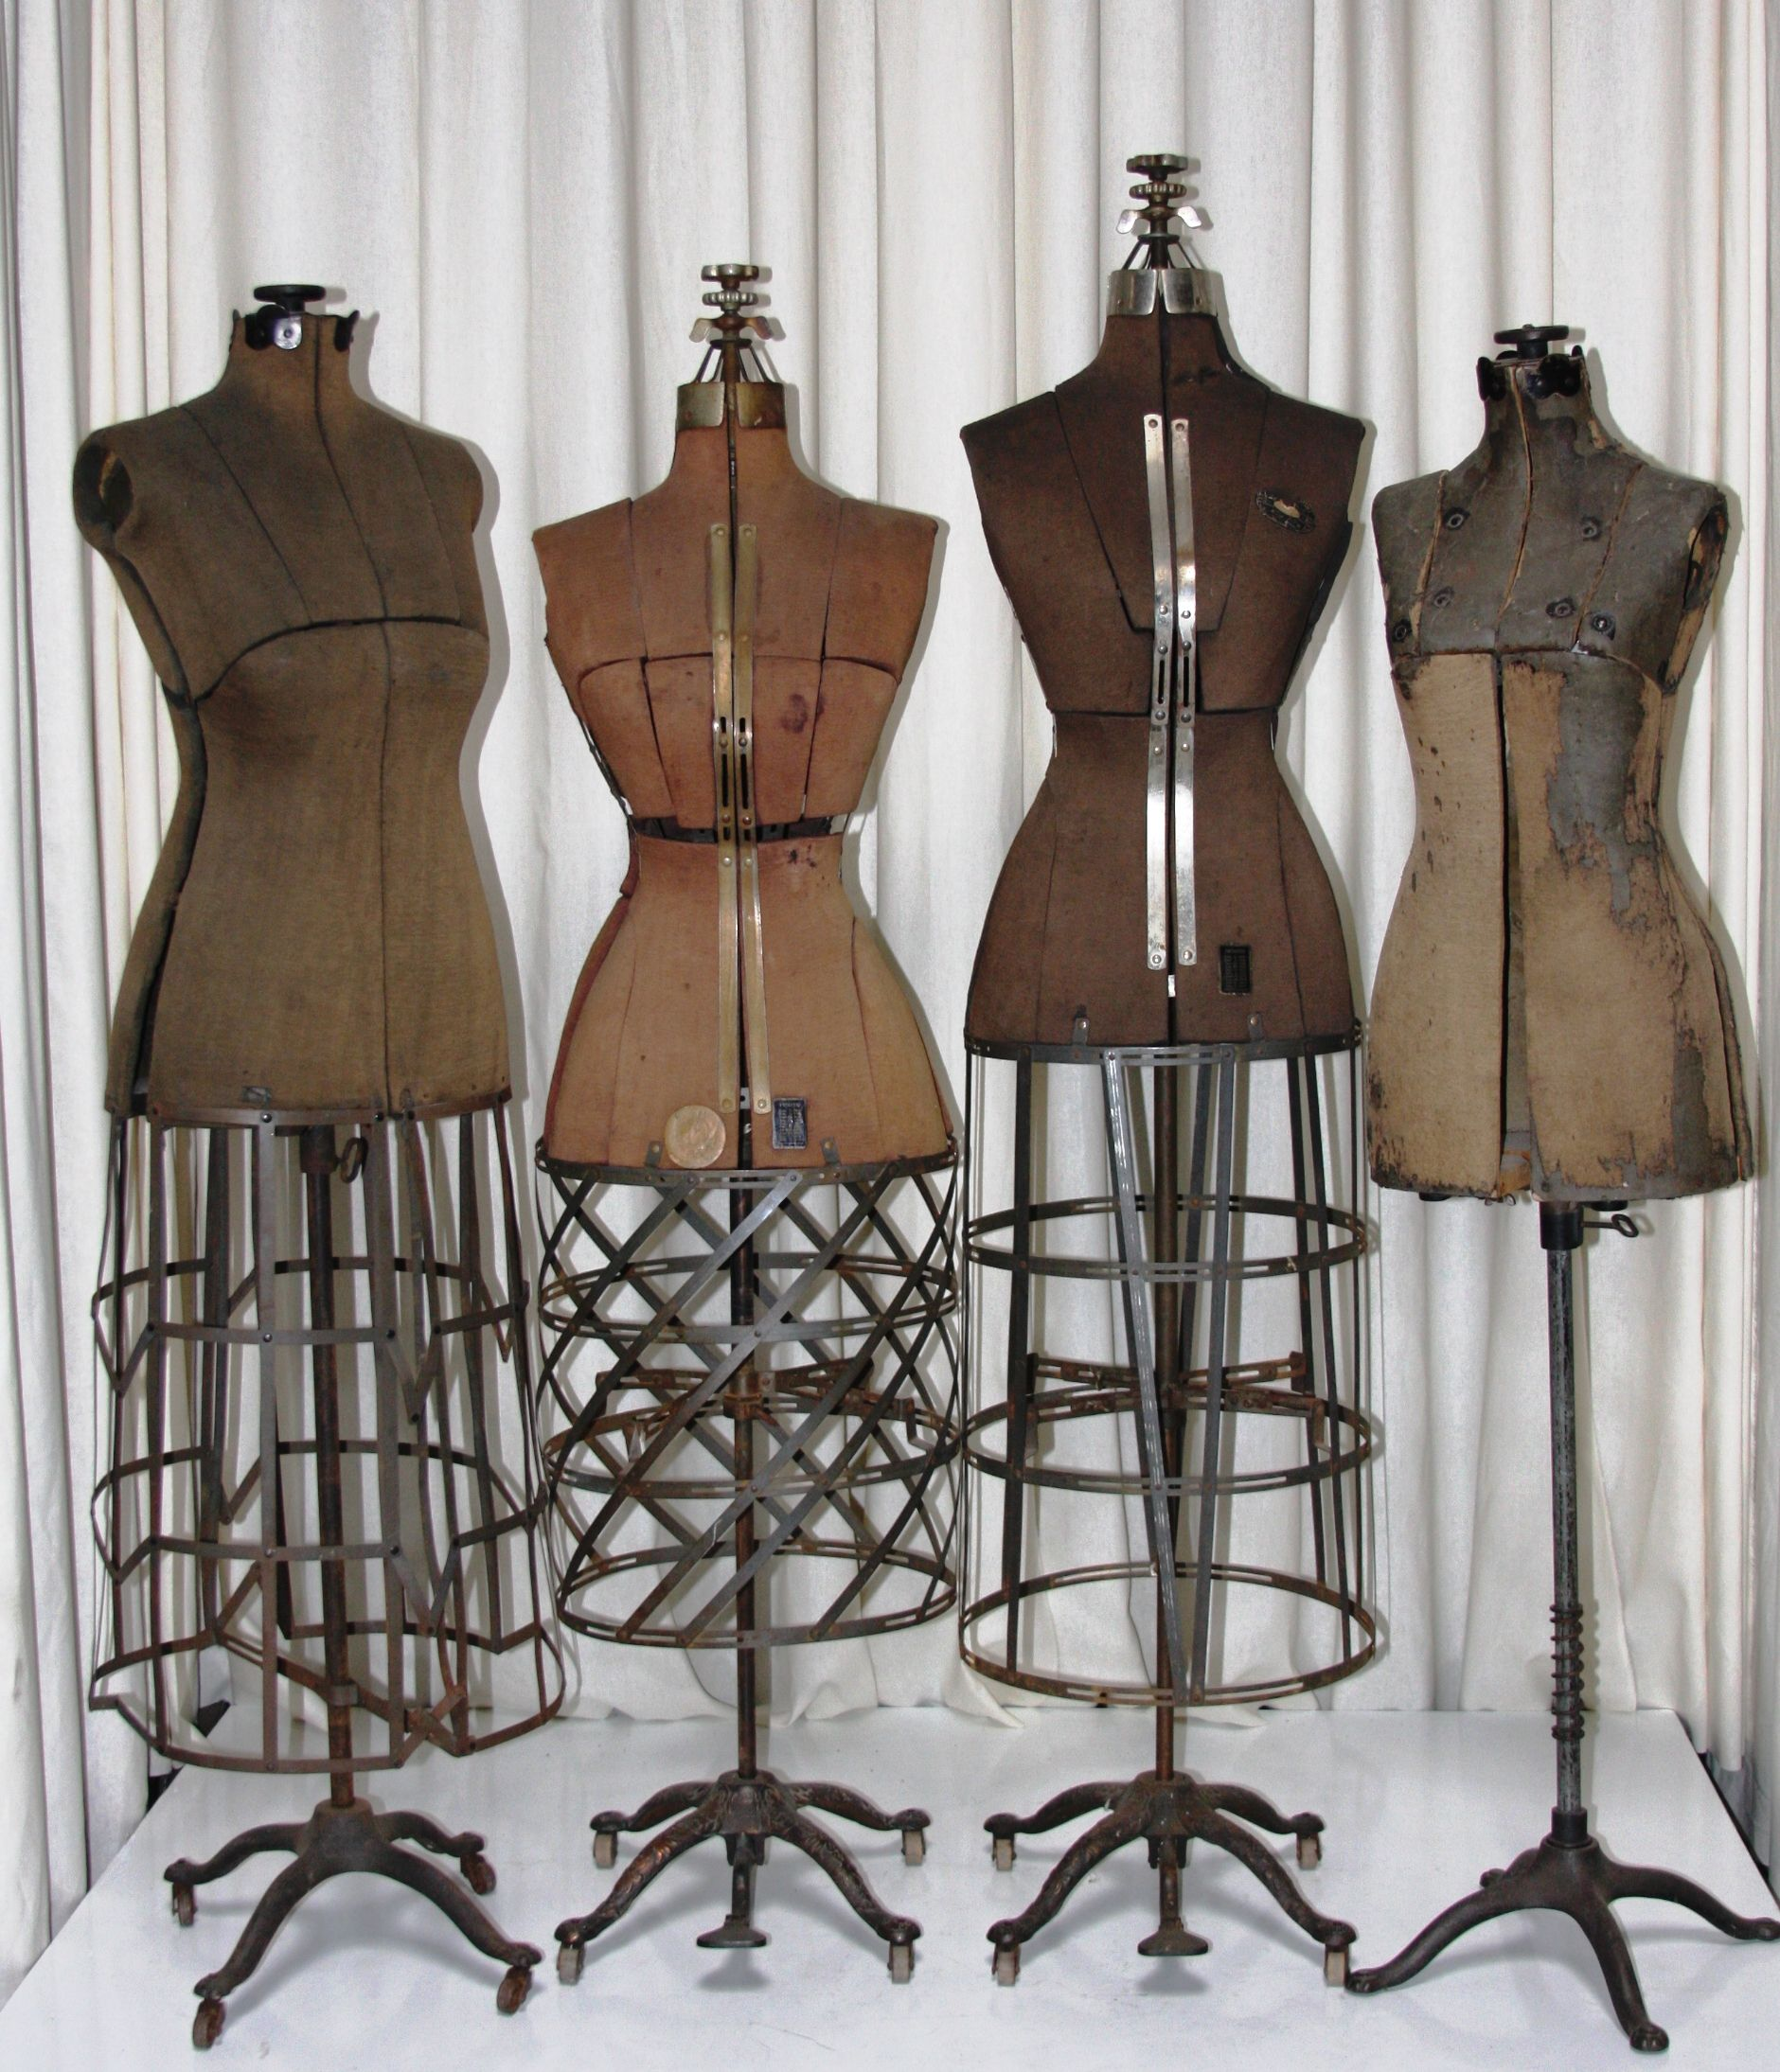 Schrank Vintage Design Vintage Style Dress Forms I Want One Of These For My Bedroom And A